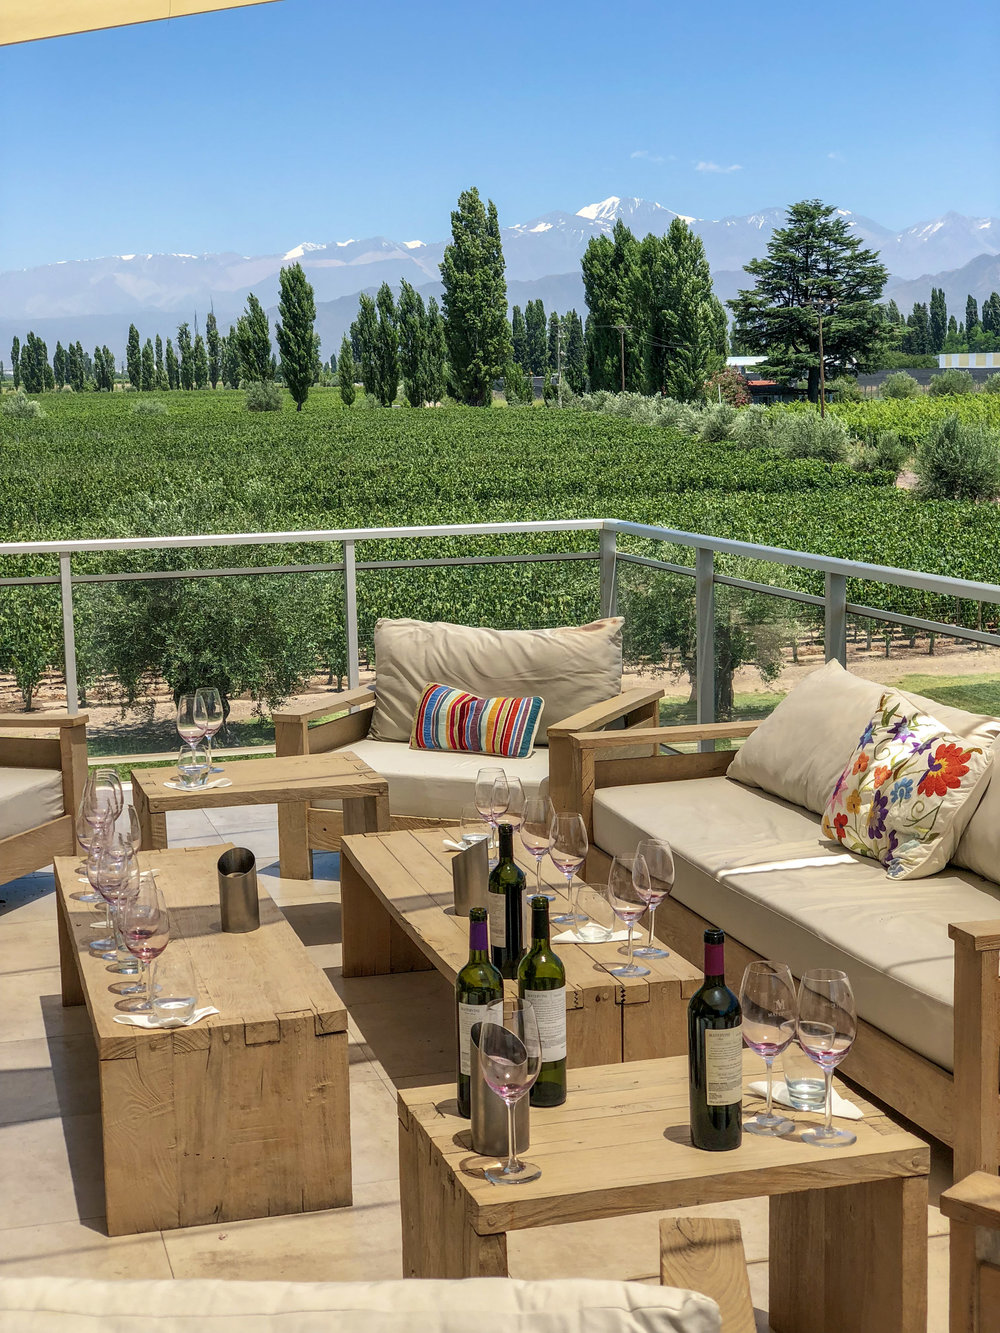 Outdoor tasting area at Matervini.